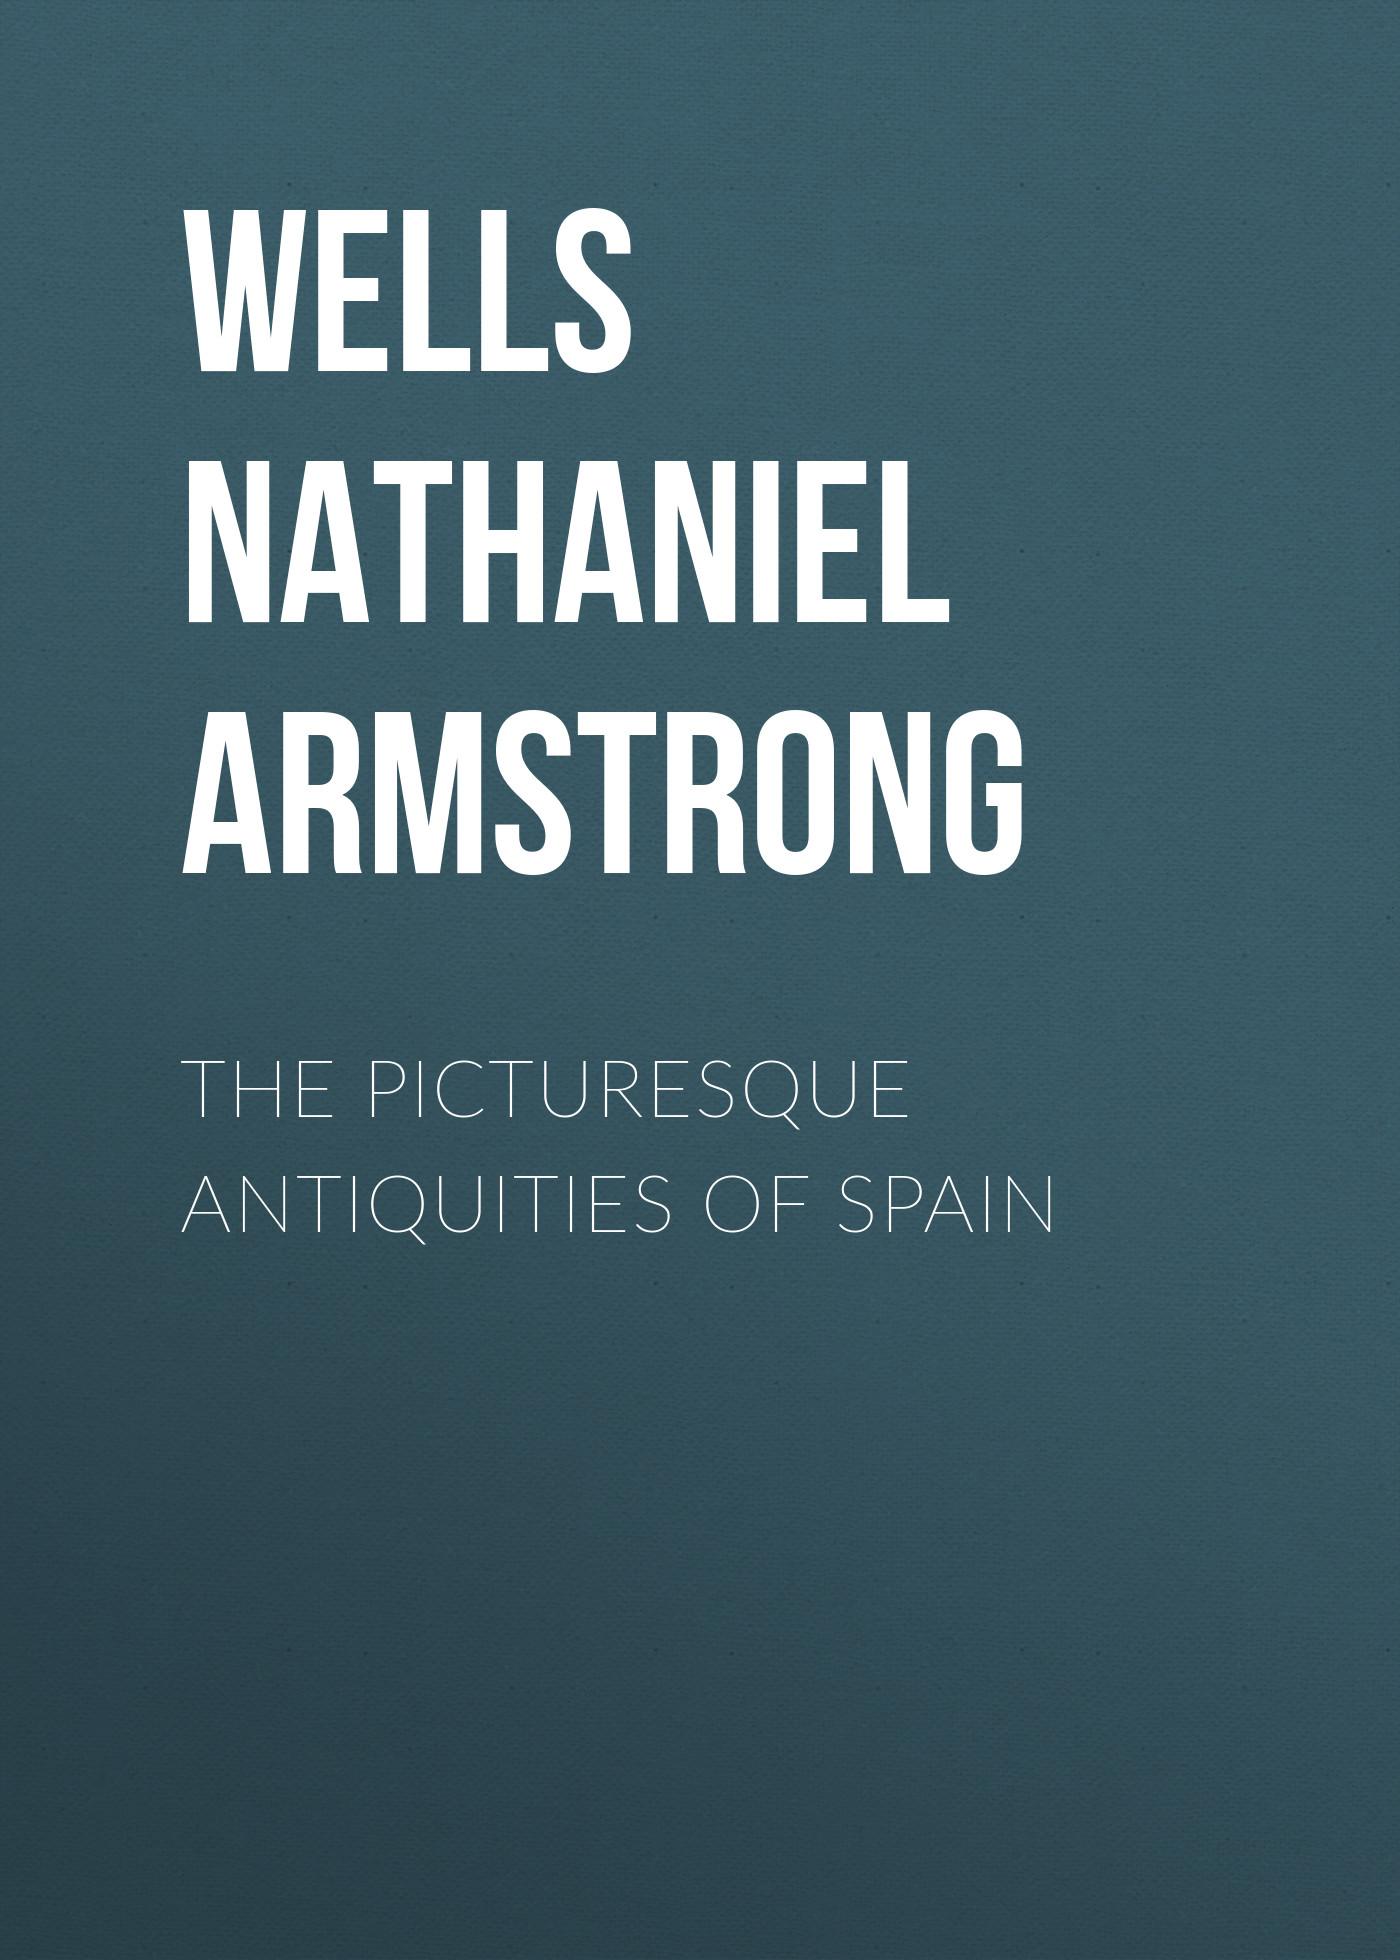 Wells Nathaniel Armstrong The Picturesque Antiquities of Spain roman antiquities – books iii